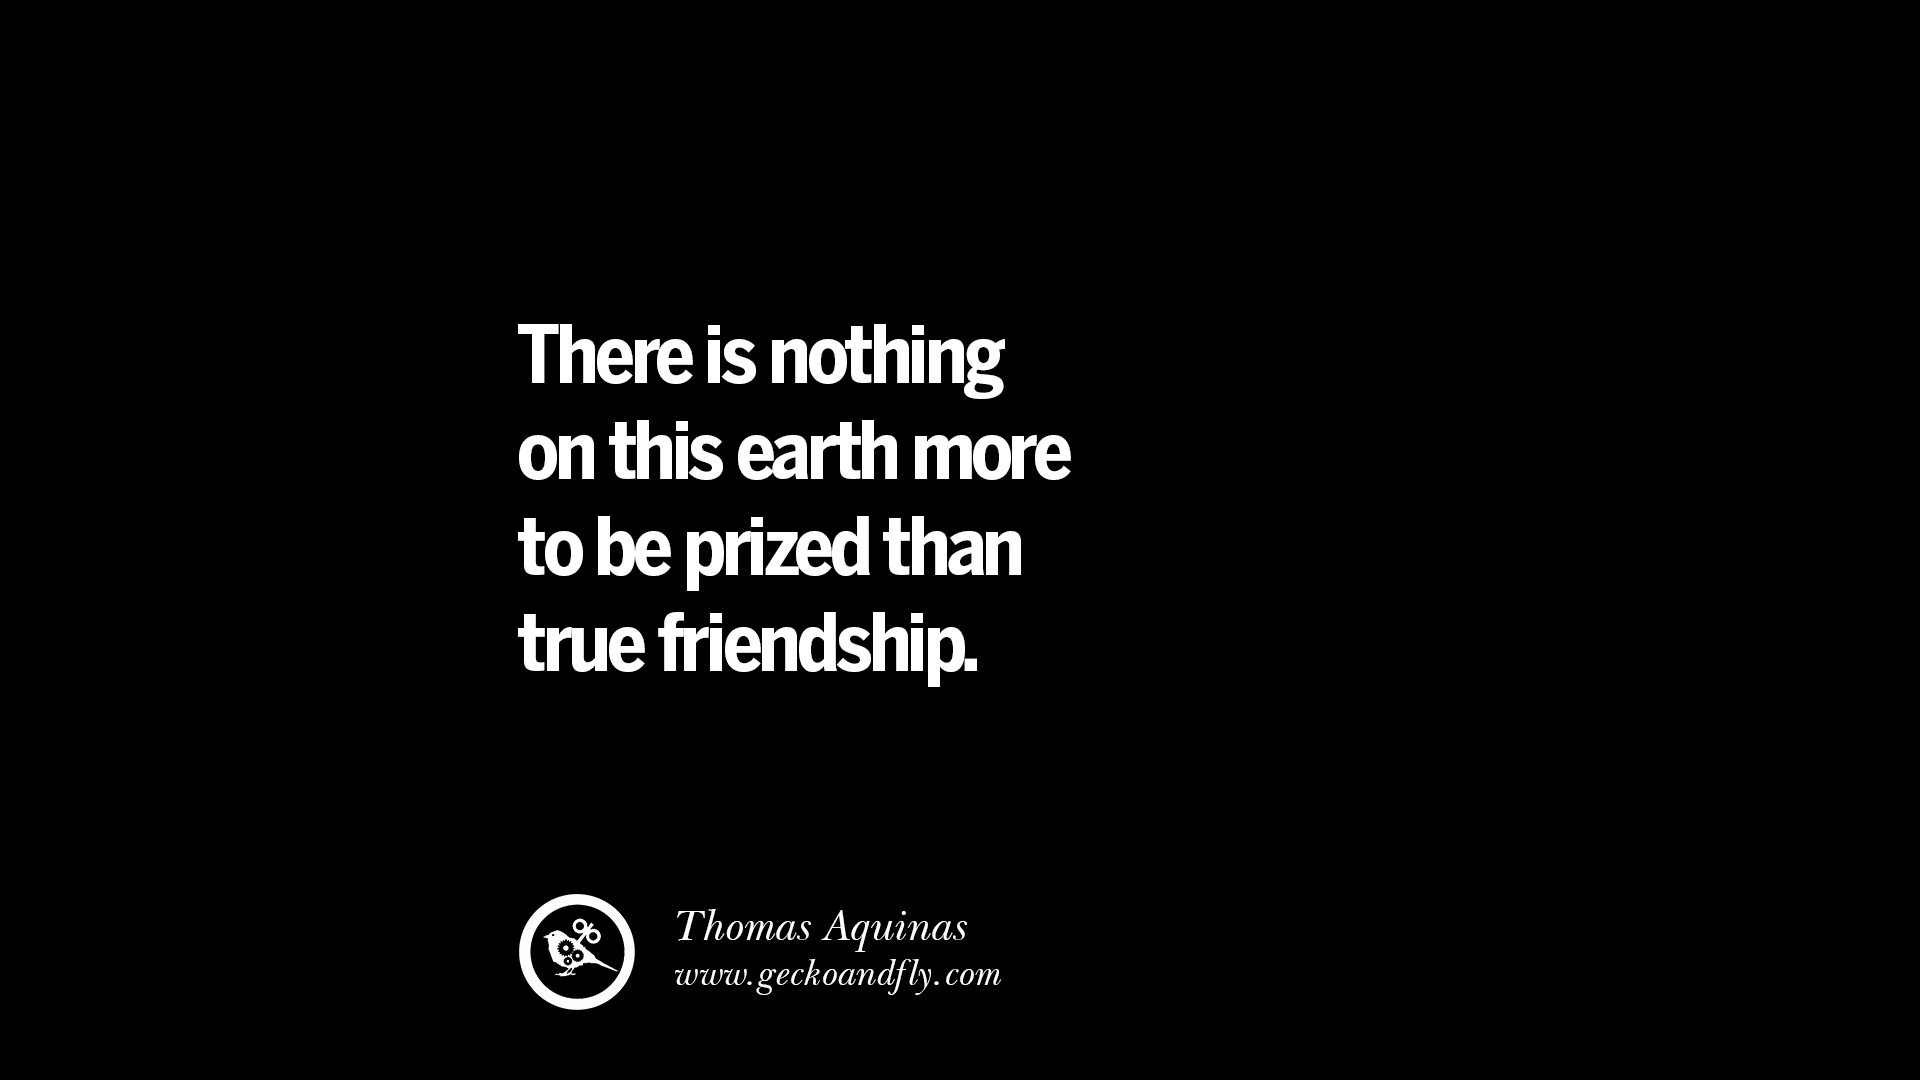 Quotes About Friendship With Images Romantic Quotes For Friendship Love Quotes Best For Your Life.